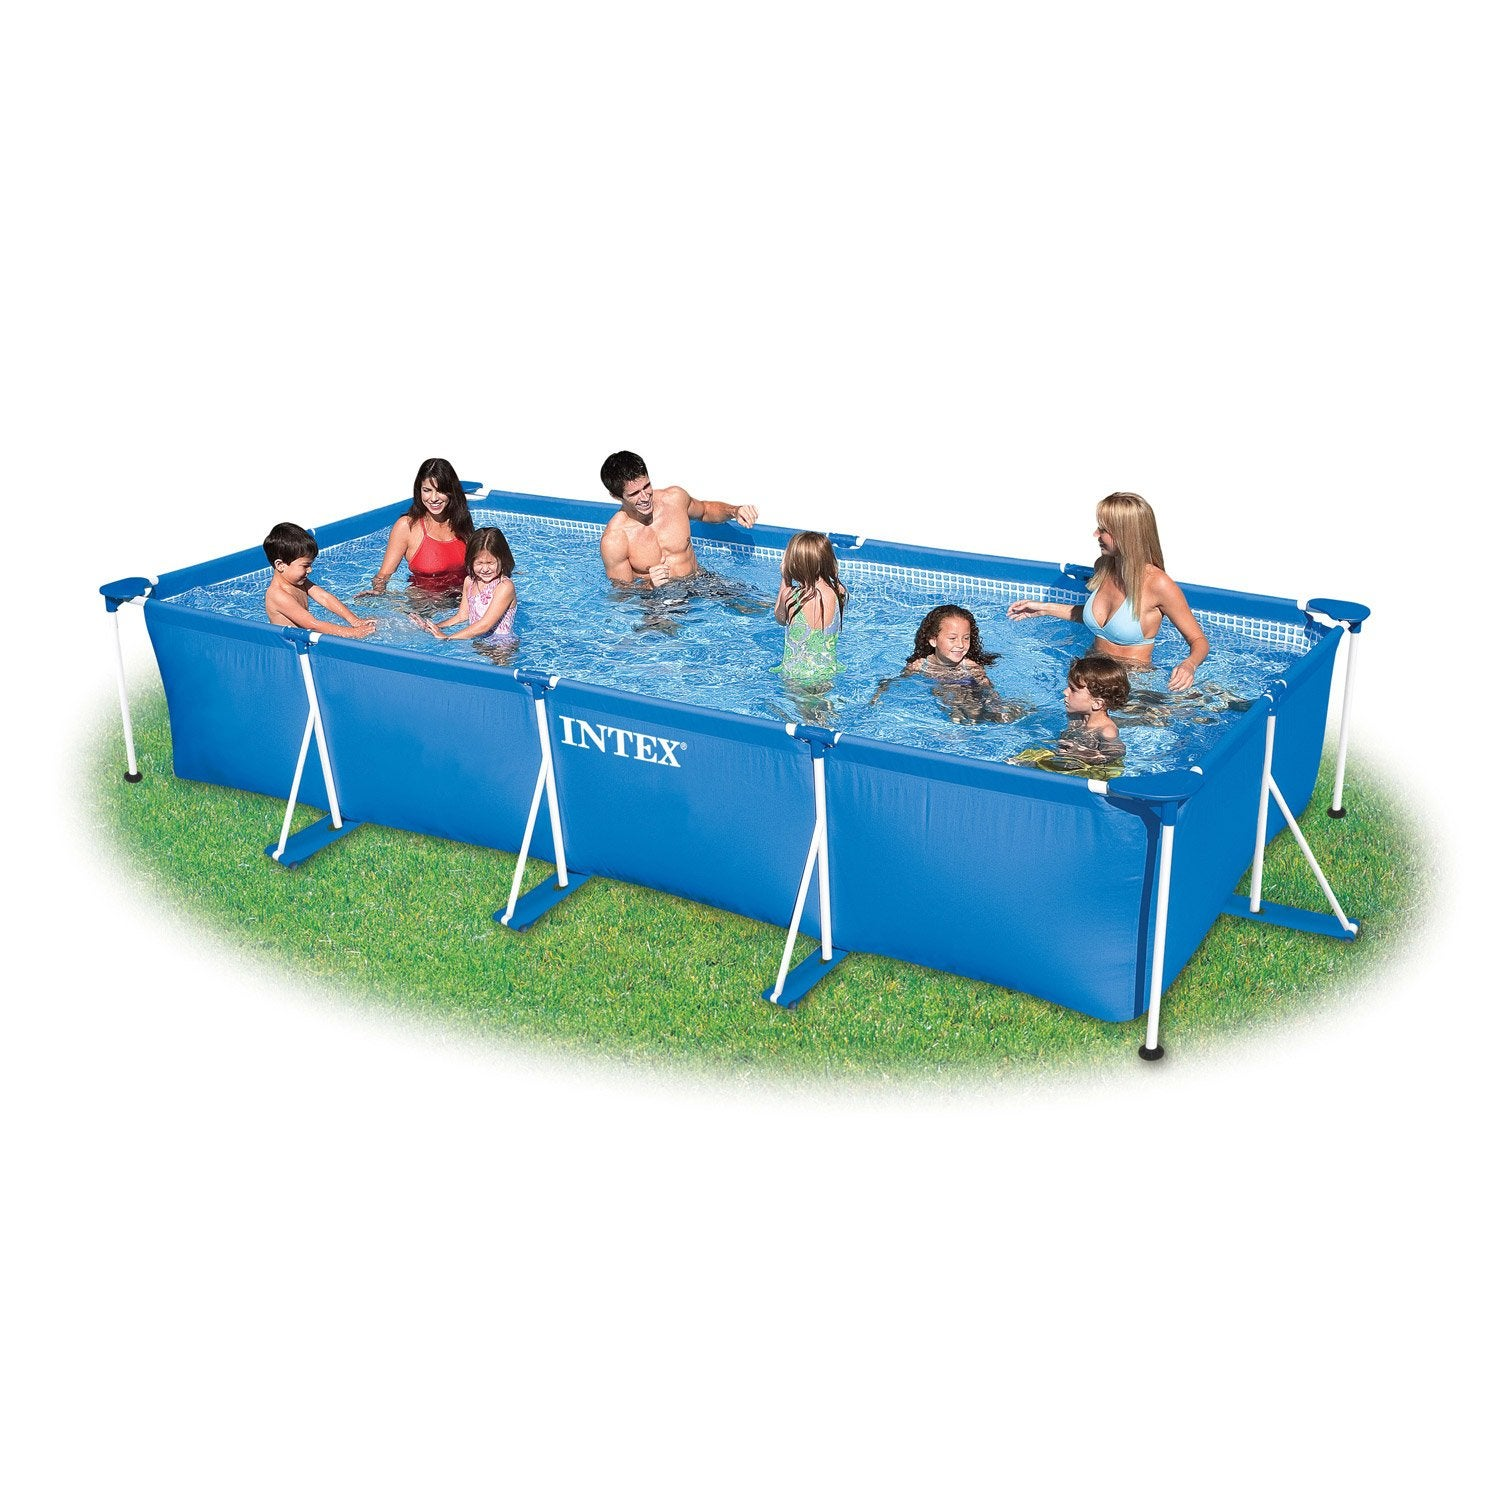 Piscine hors sol autoportante tubulaire intex l x l for Piscine demontable hors sol